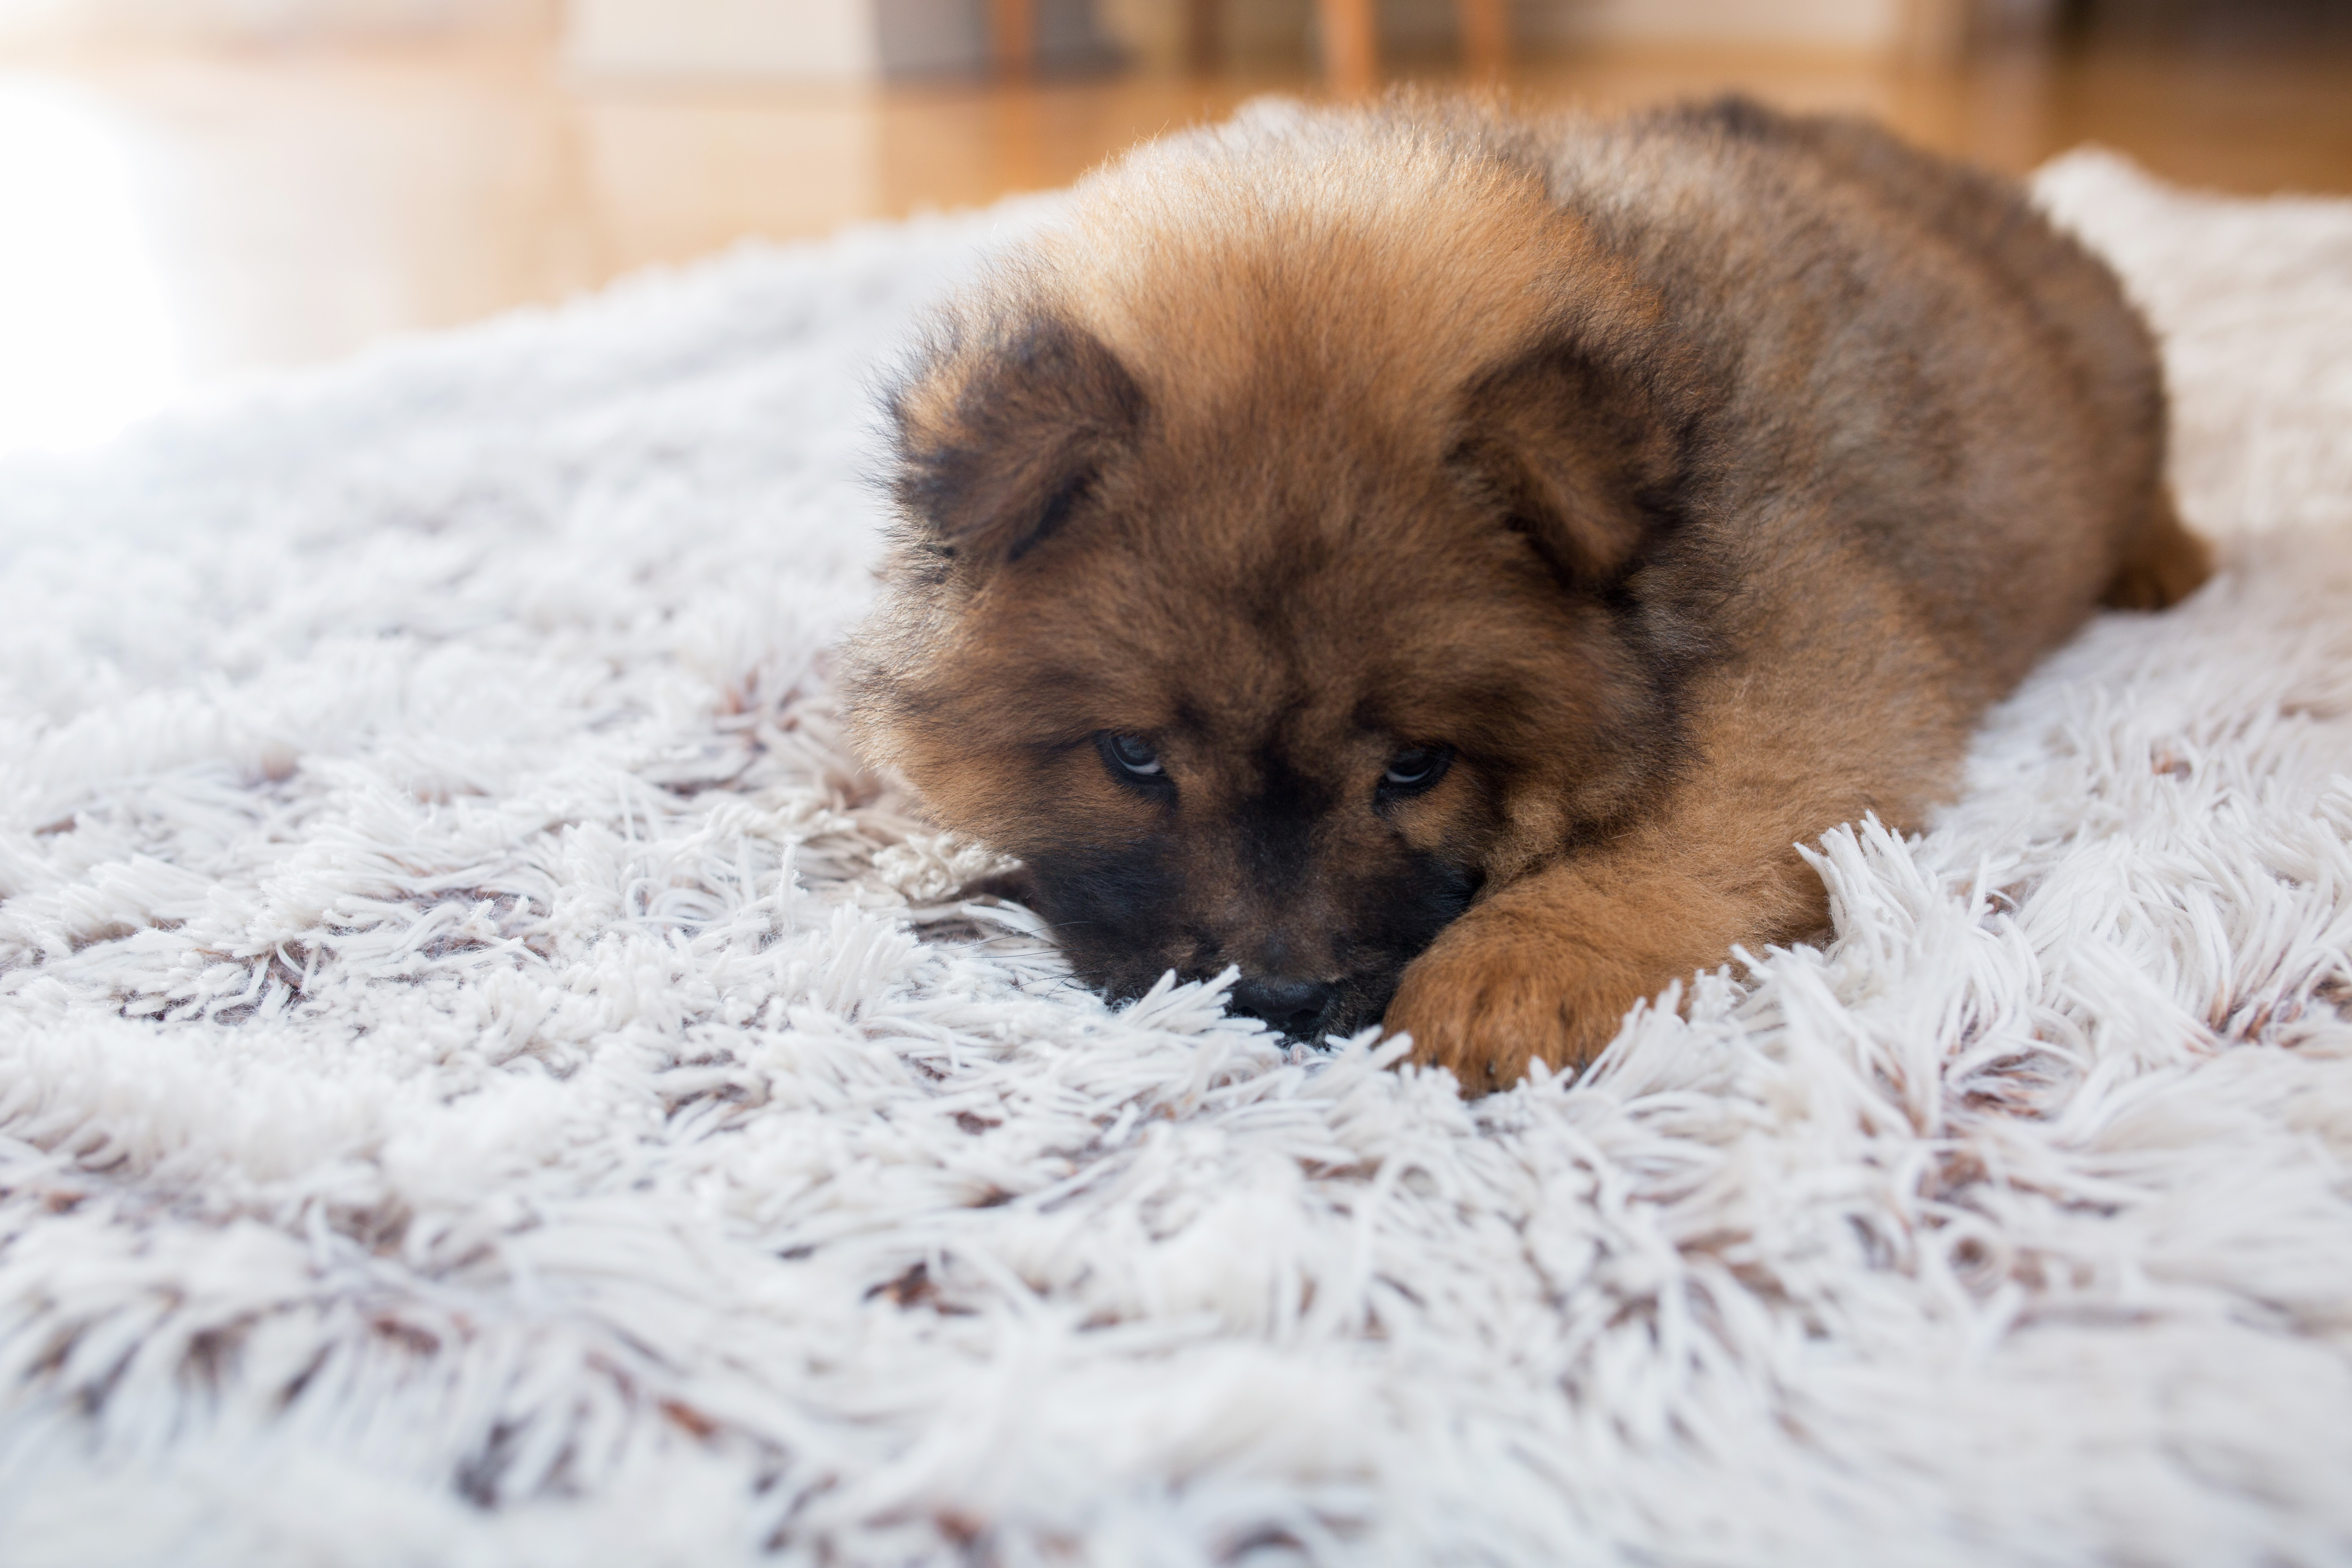 How to Deodorize Dog Urine on Outdoor Carpeting | Home Guides | SF Gate